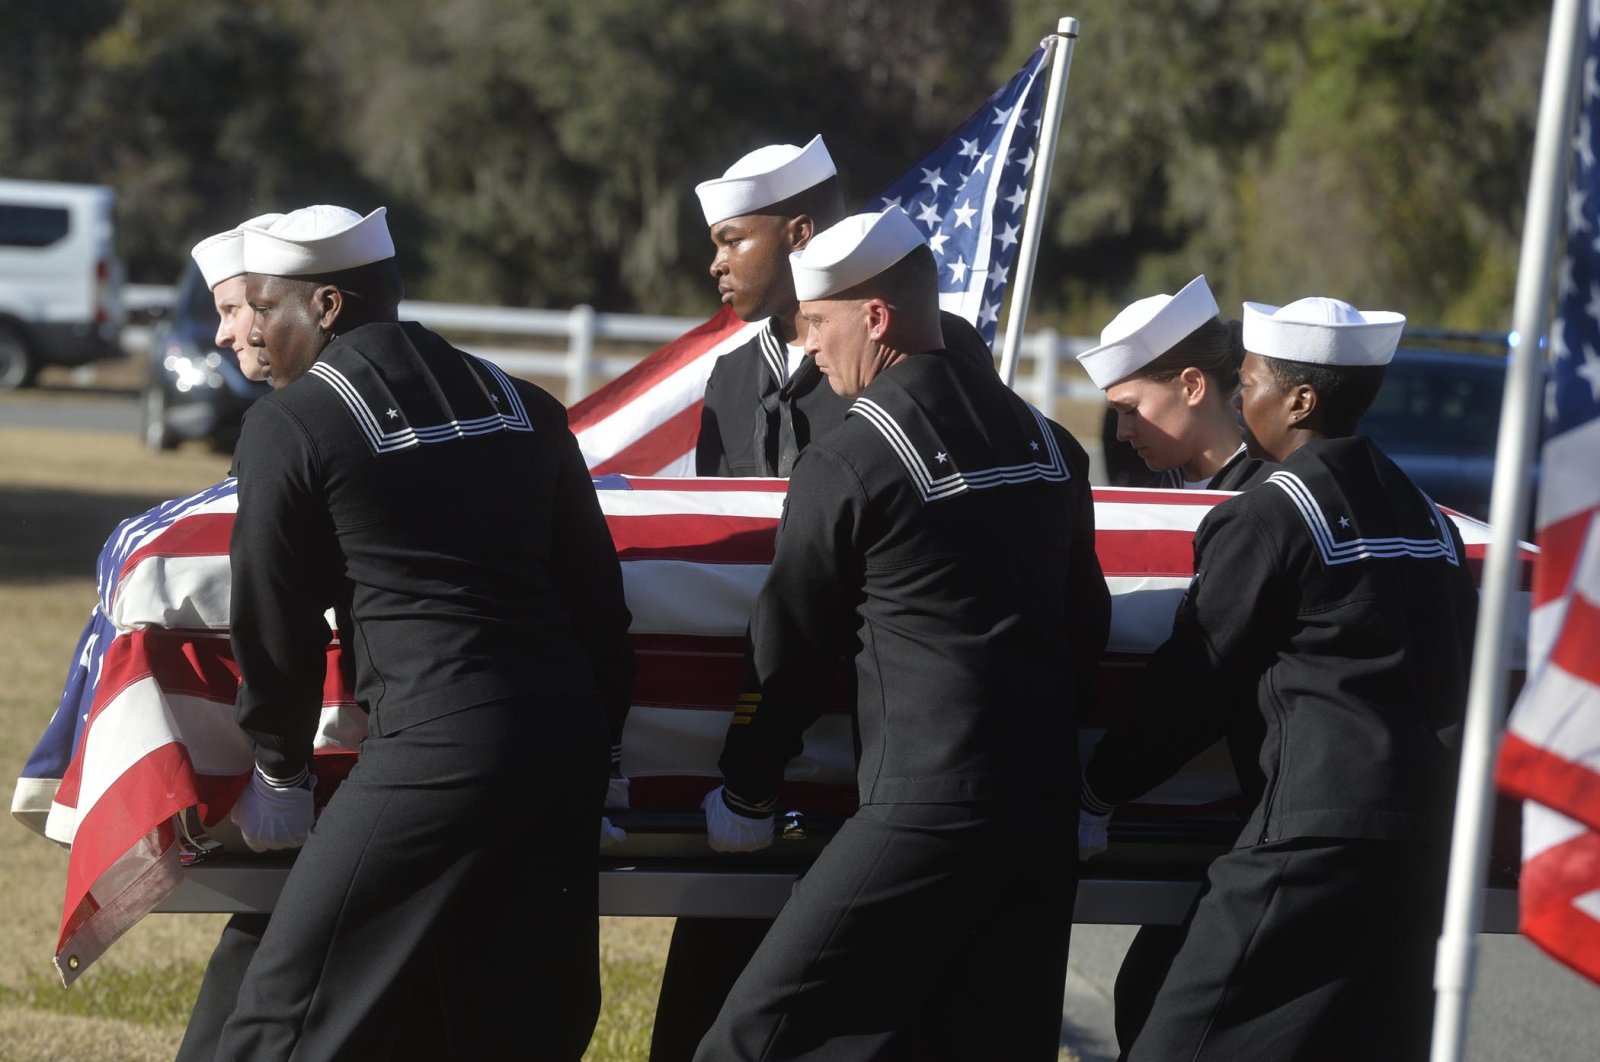 Sailors carry the casket of Cameron Walters at Oak Hill Cemetery in Richmond Hill, Ga. Walters was one of the three Navy sailors killed in a Saudi gunman's attack at Pensacola Naval Air Station in Florida on Dec. 6. (AP Photo)